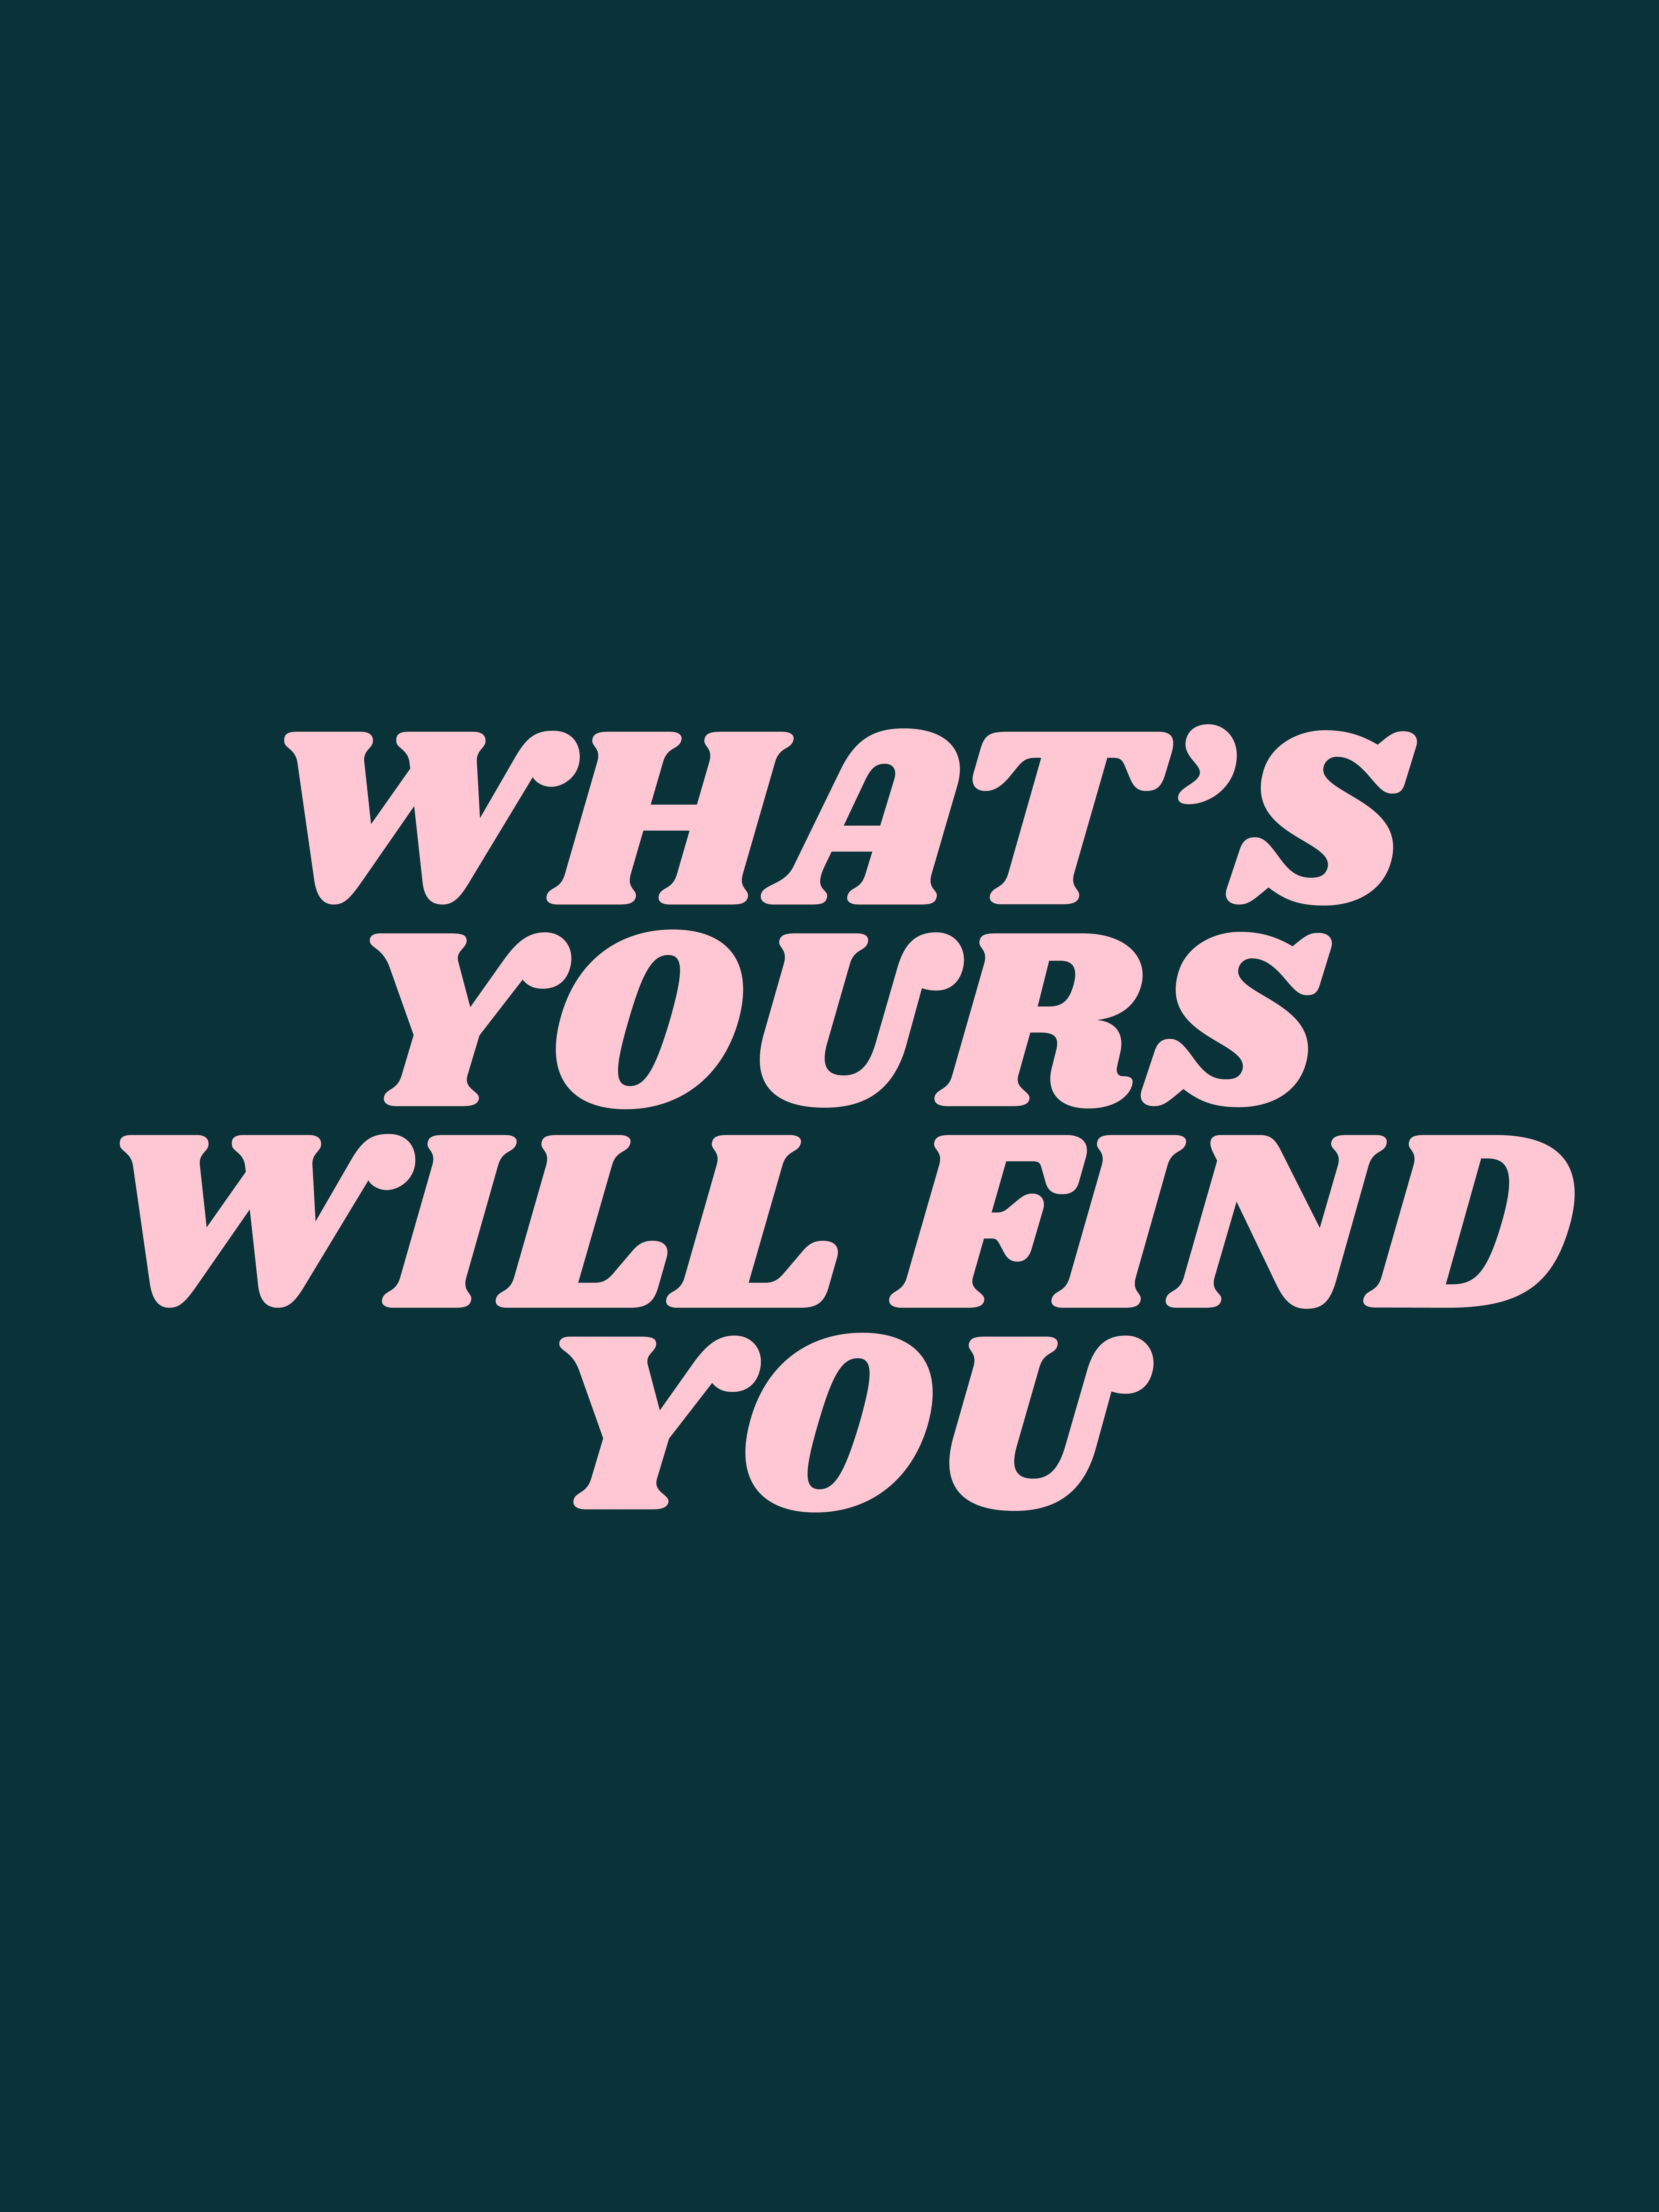 whats yours will find you | society6.com/typeangel